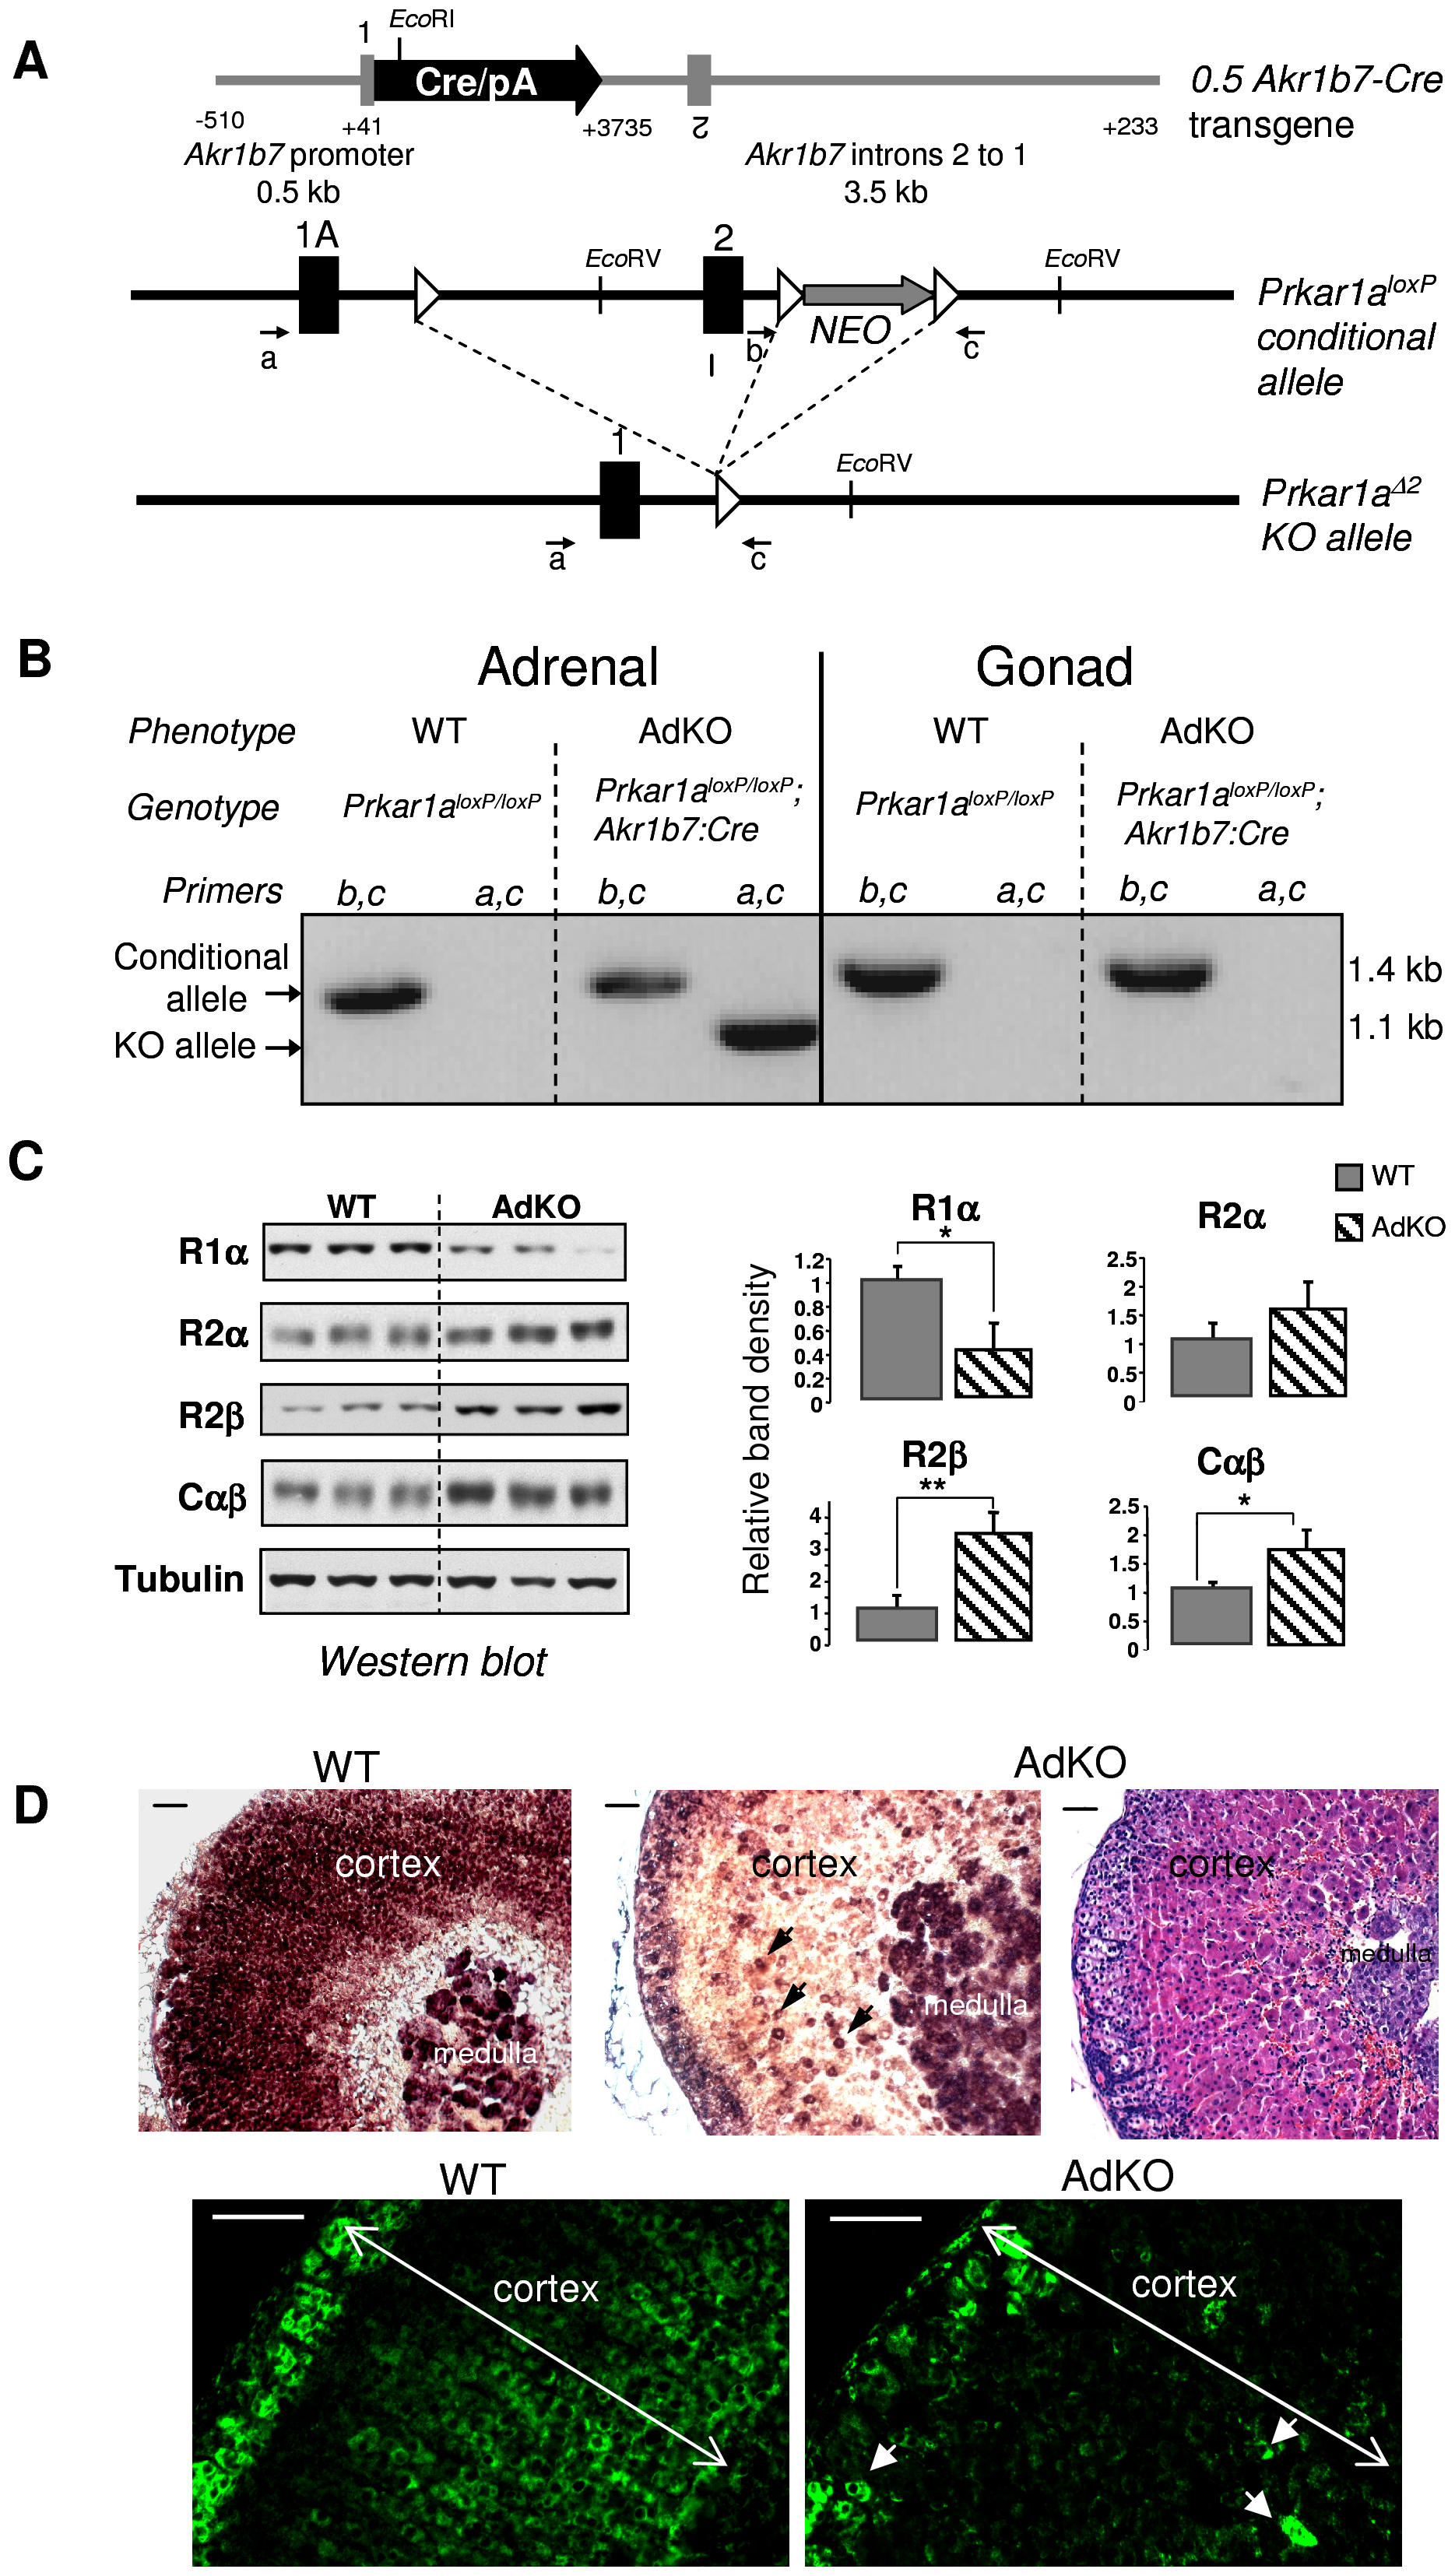 Generation of a conditional knockout for <i>Prkar1a</i> in mouse adrenal cortex (AdKO mice).